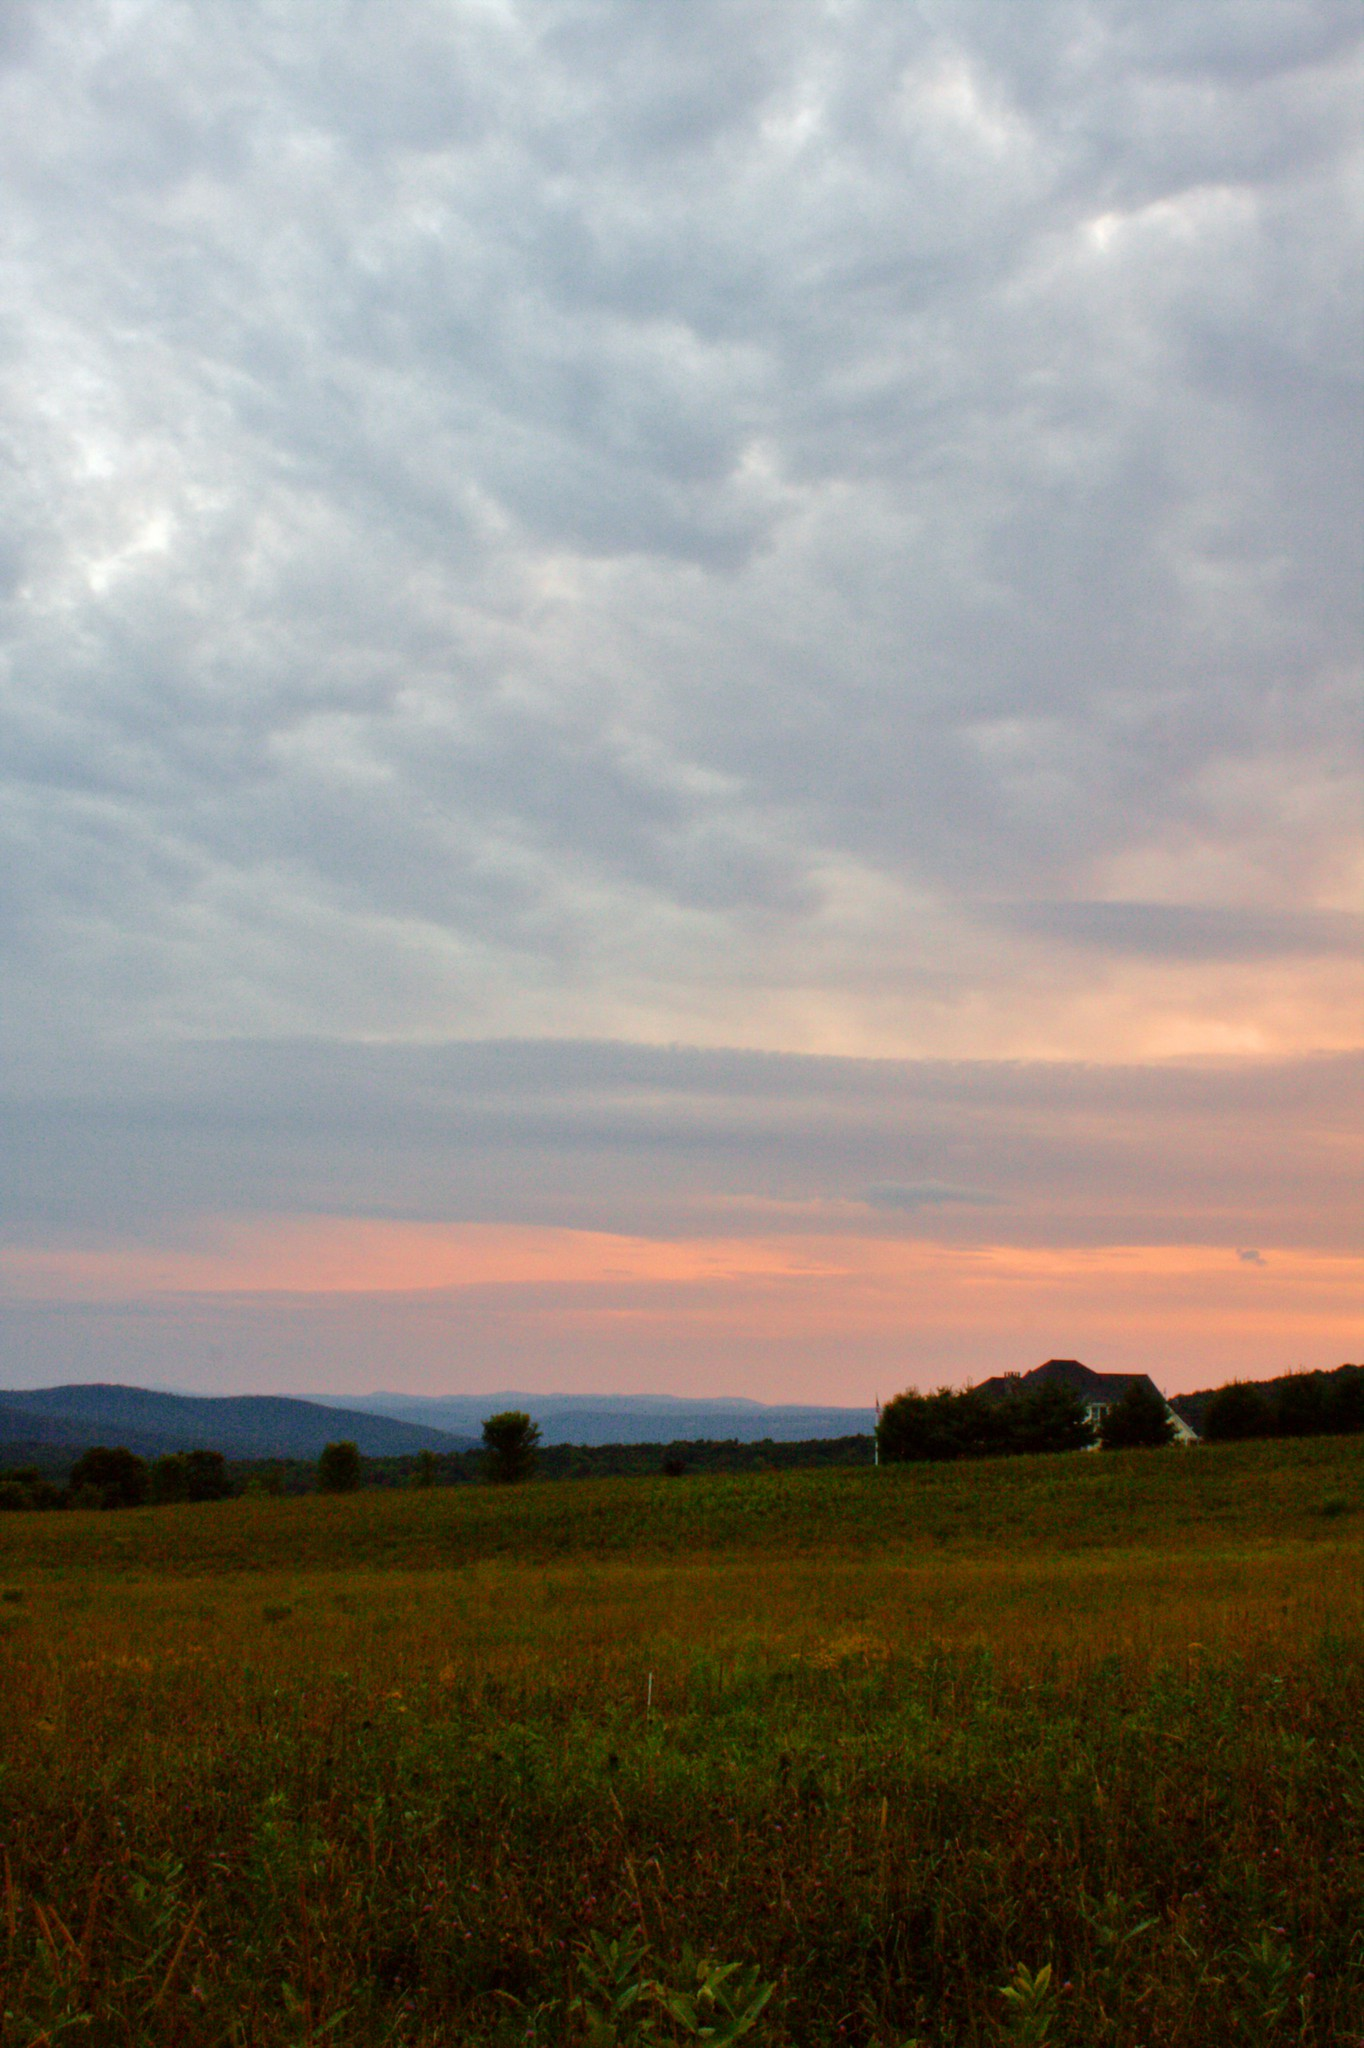 a New Hampshire summer sunset on Flickr